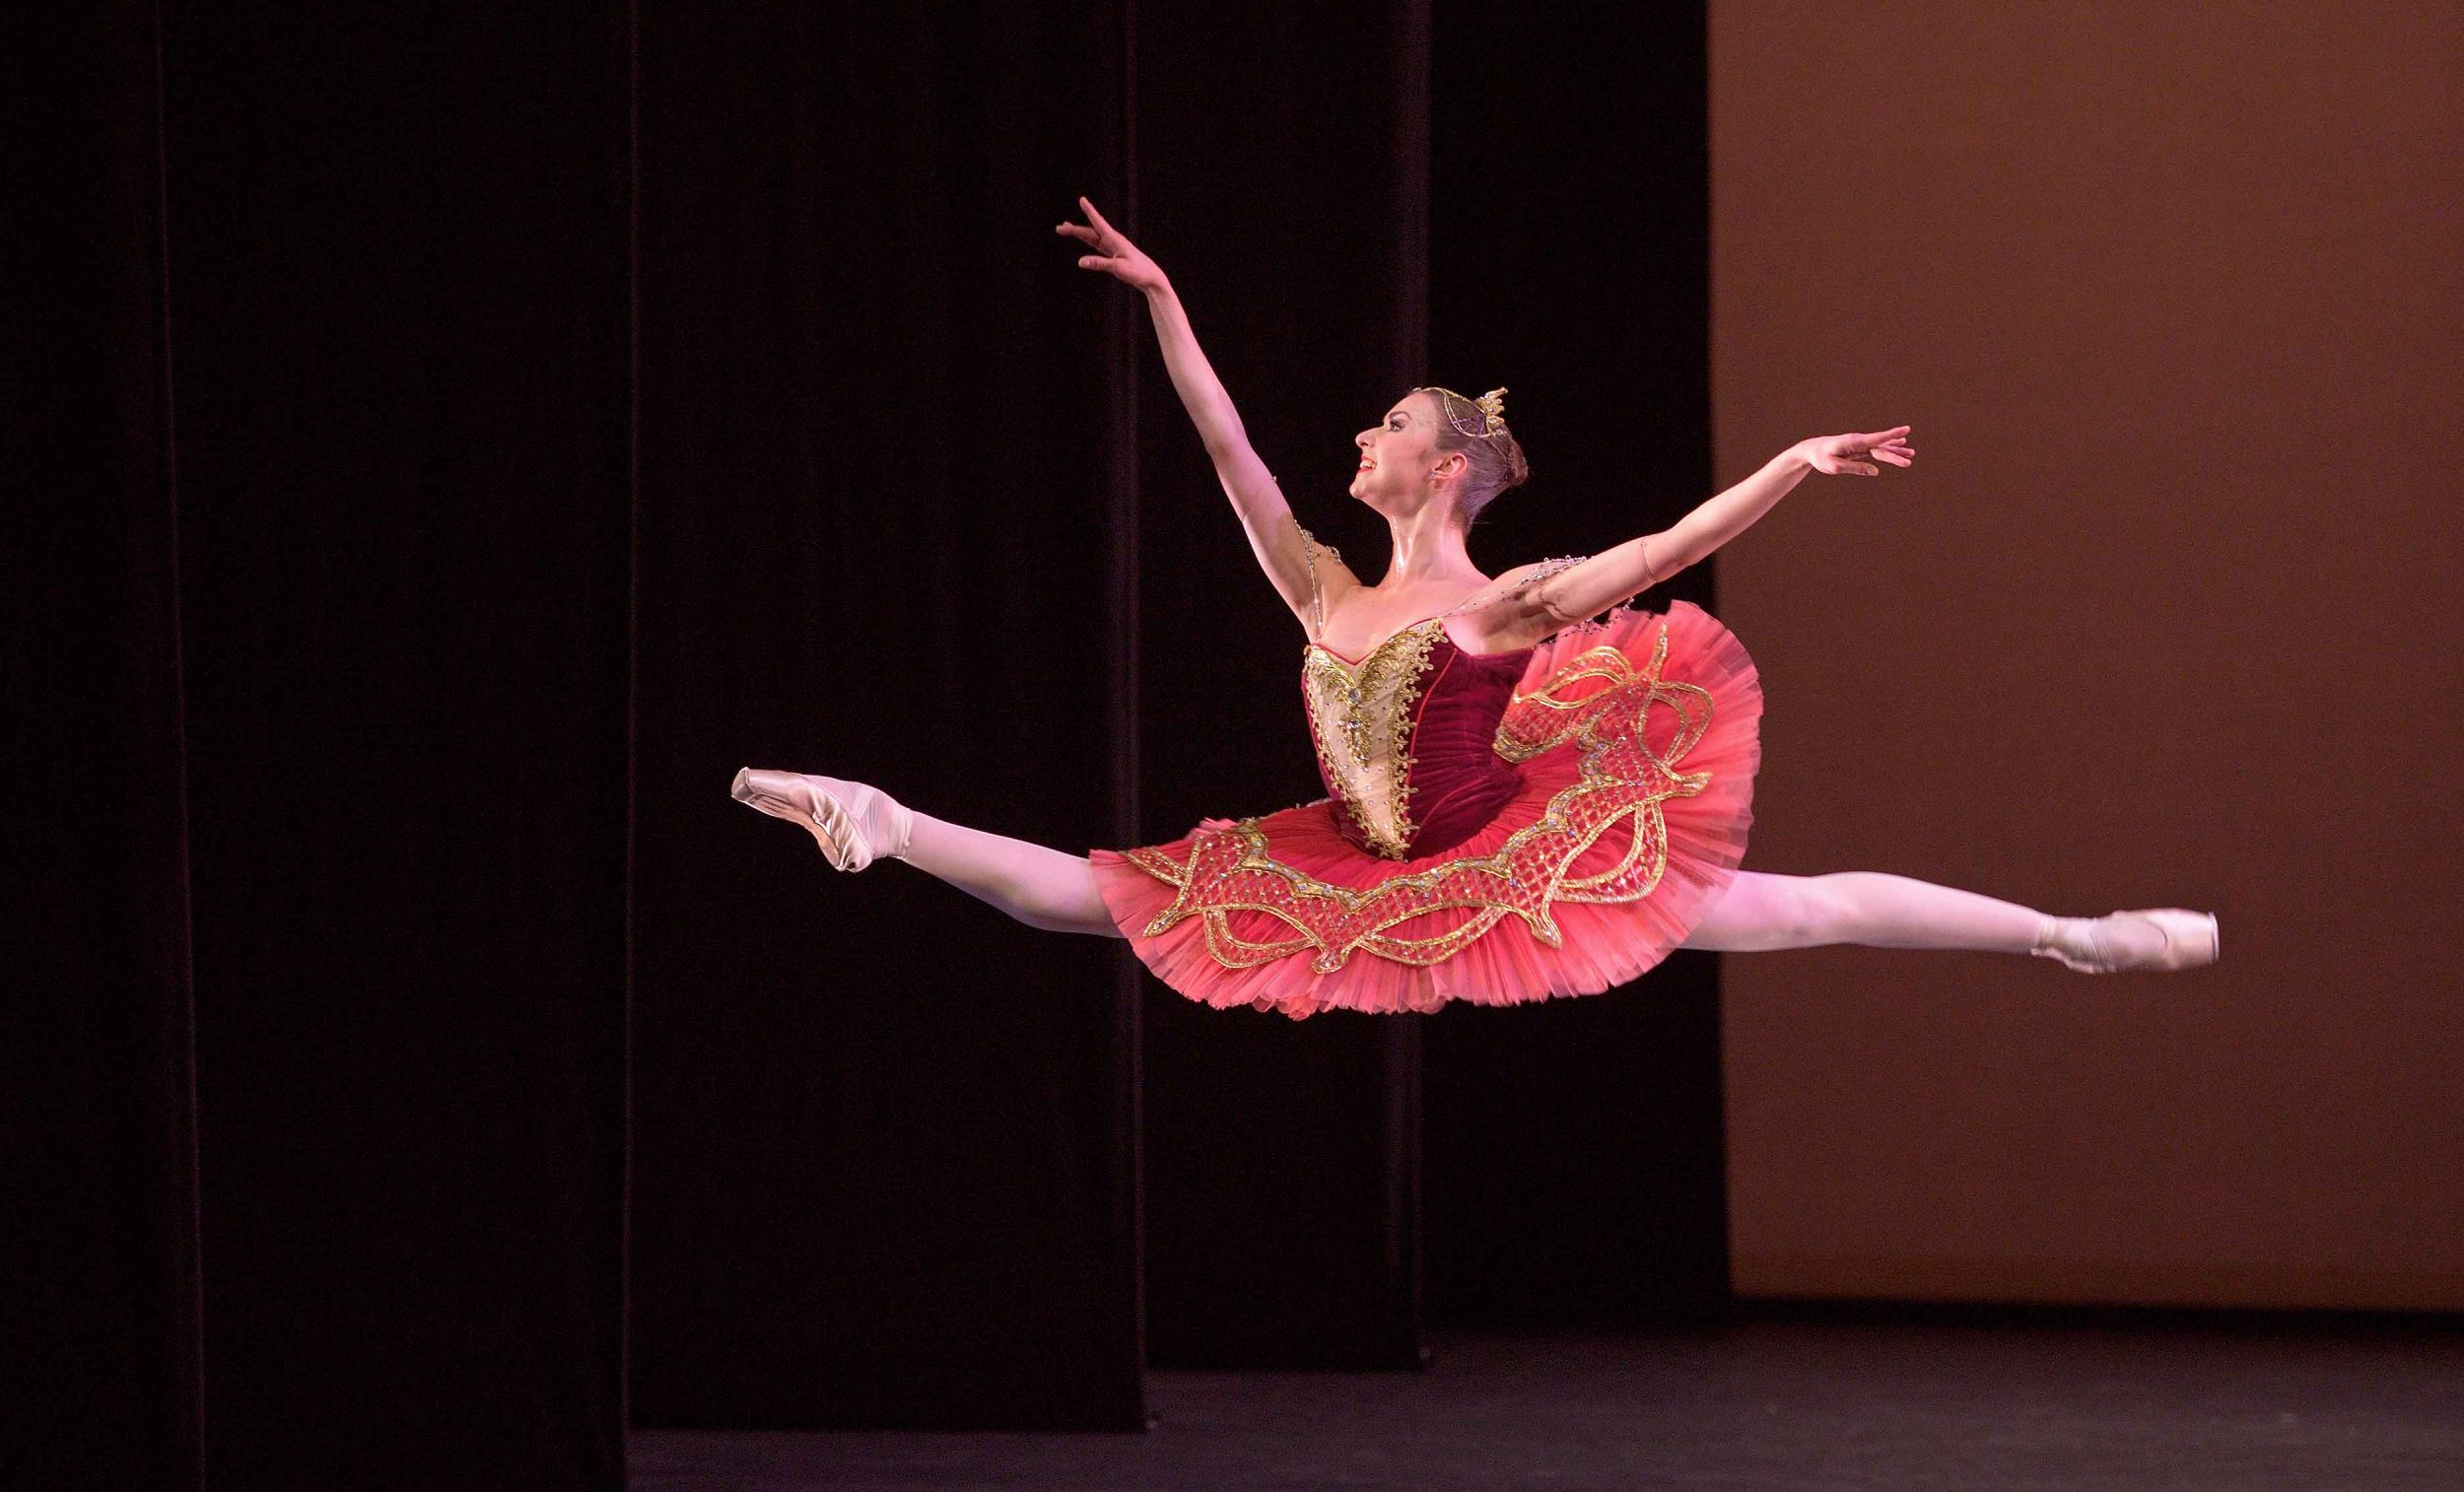 Isabelle-Brouwers-and-Emilio-Pavan-performing-Paquita-©-Laurent-Liotardo--(5)